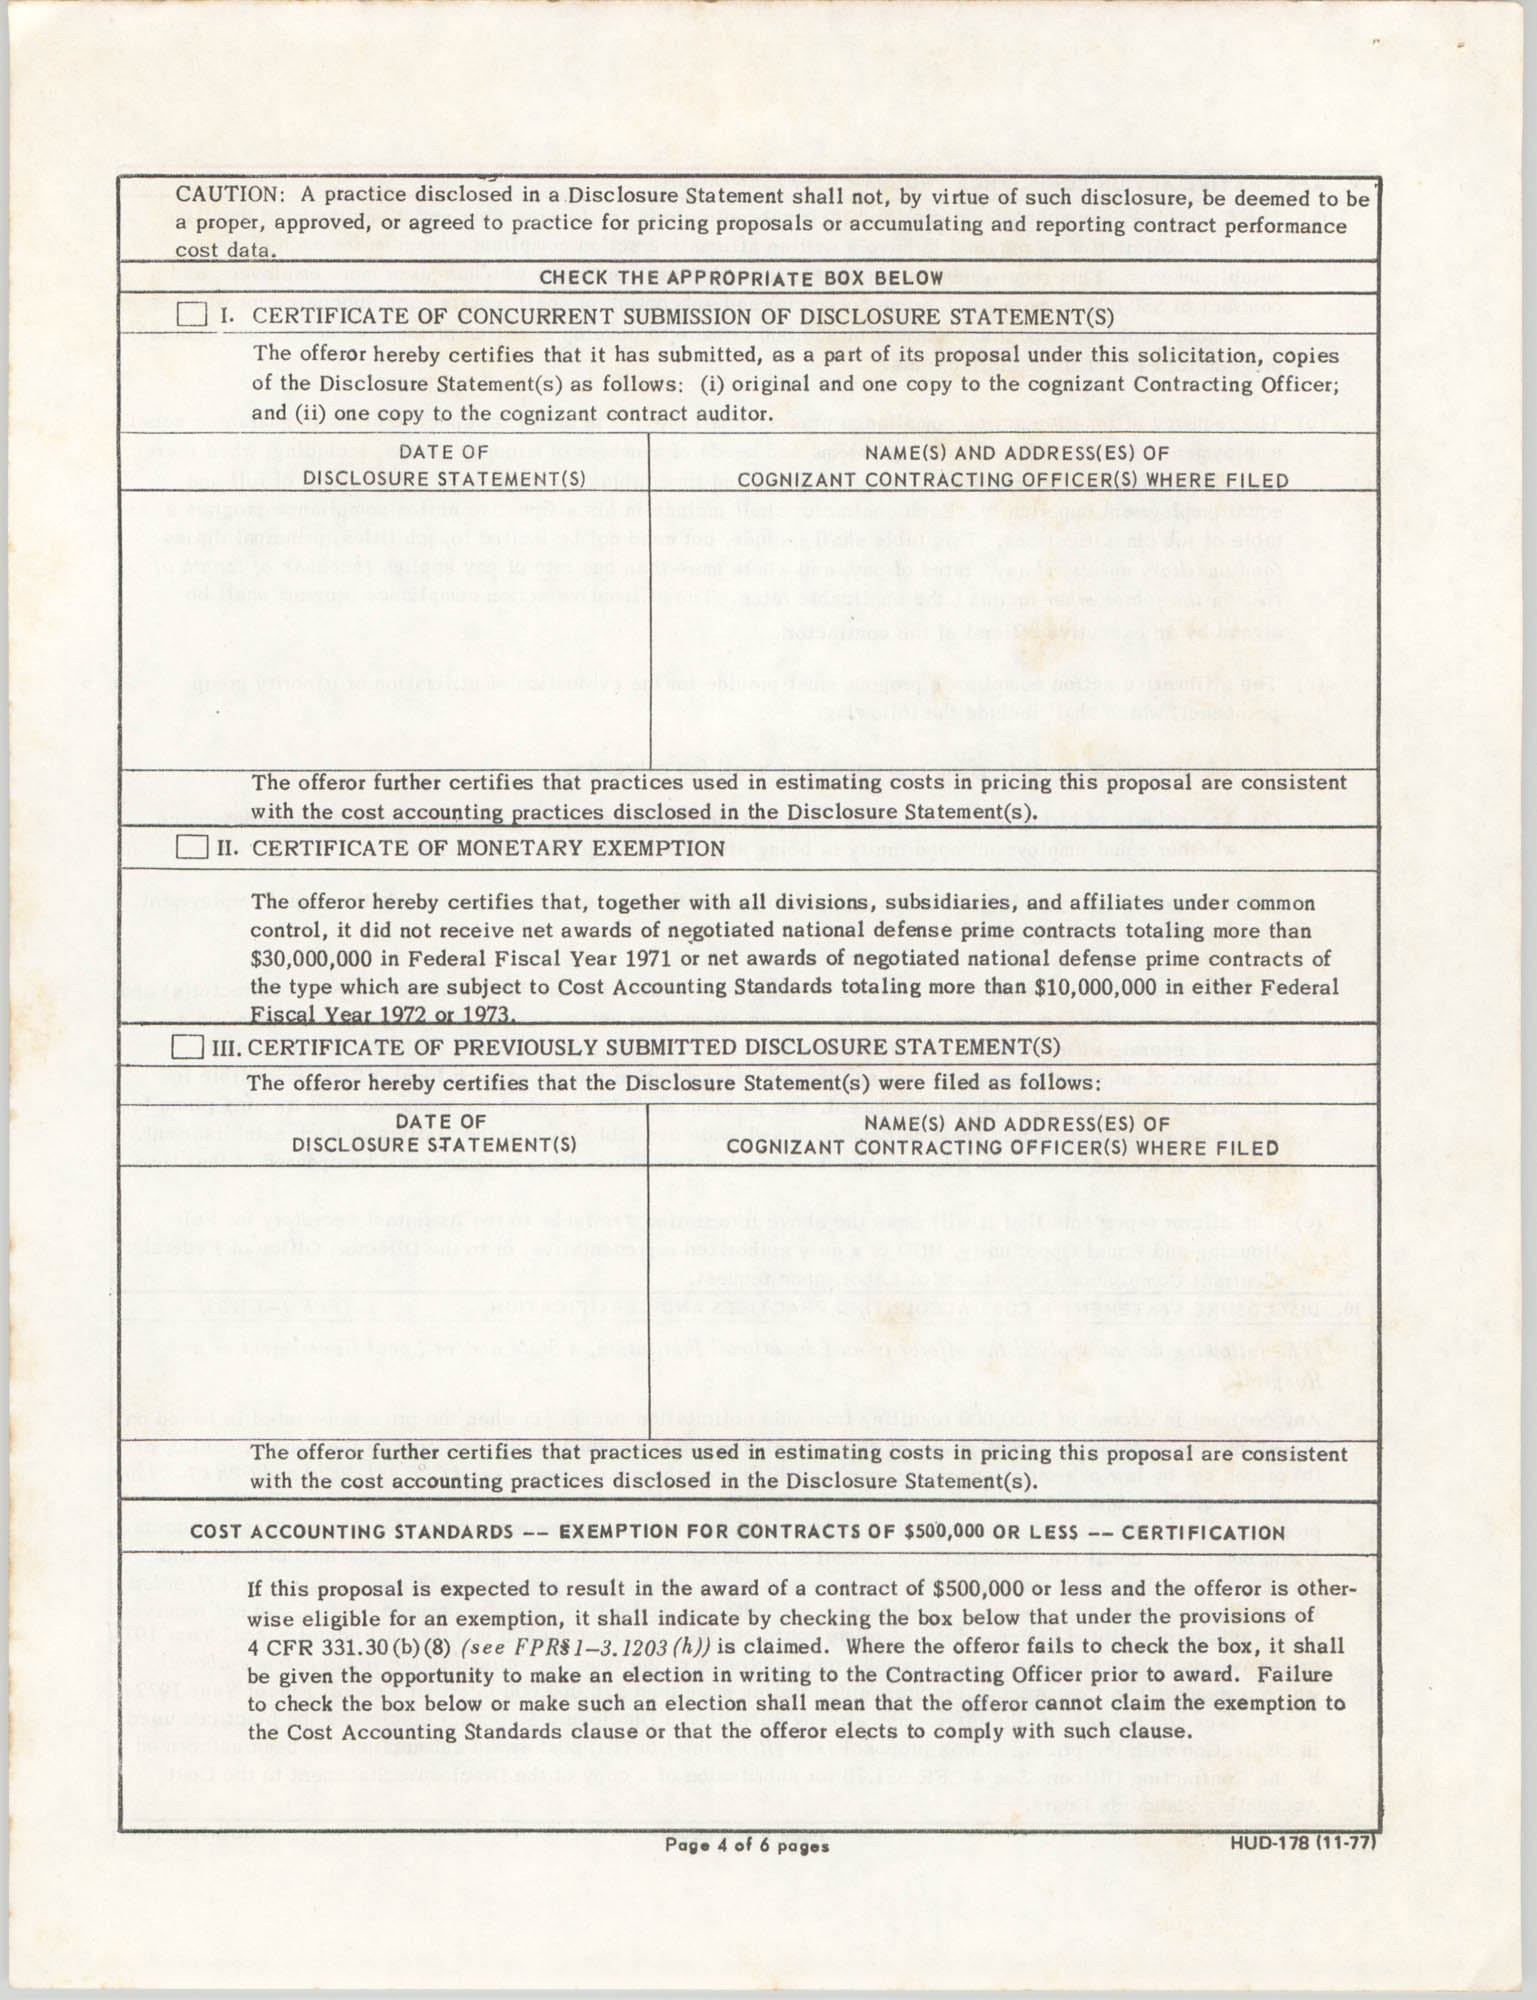 Request for Proposal H-4301, Certifications and Representations, Page 4